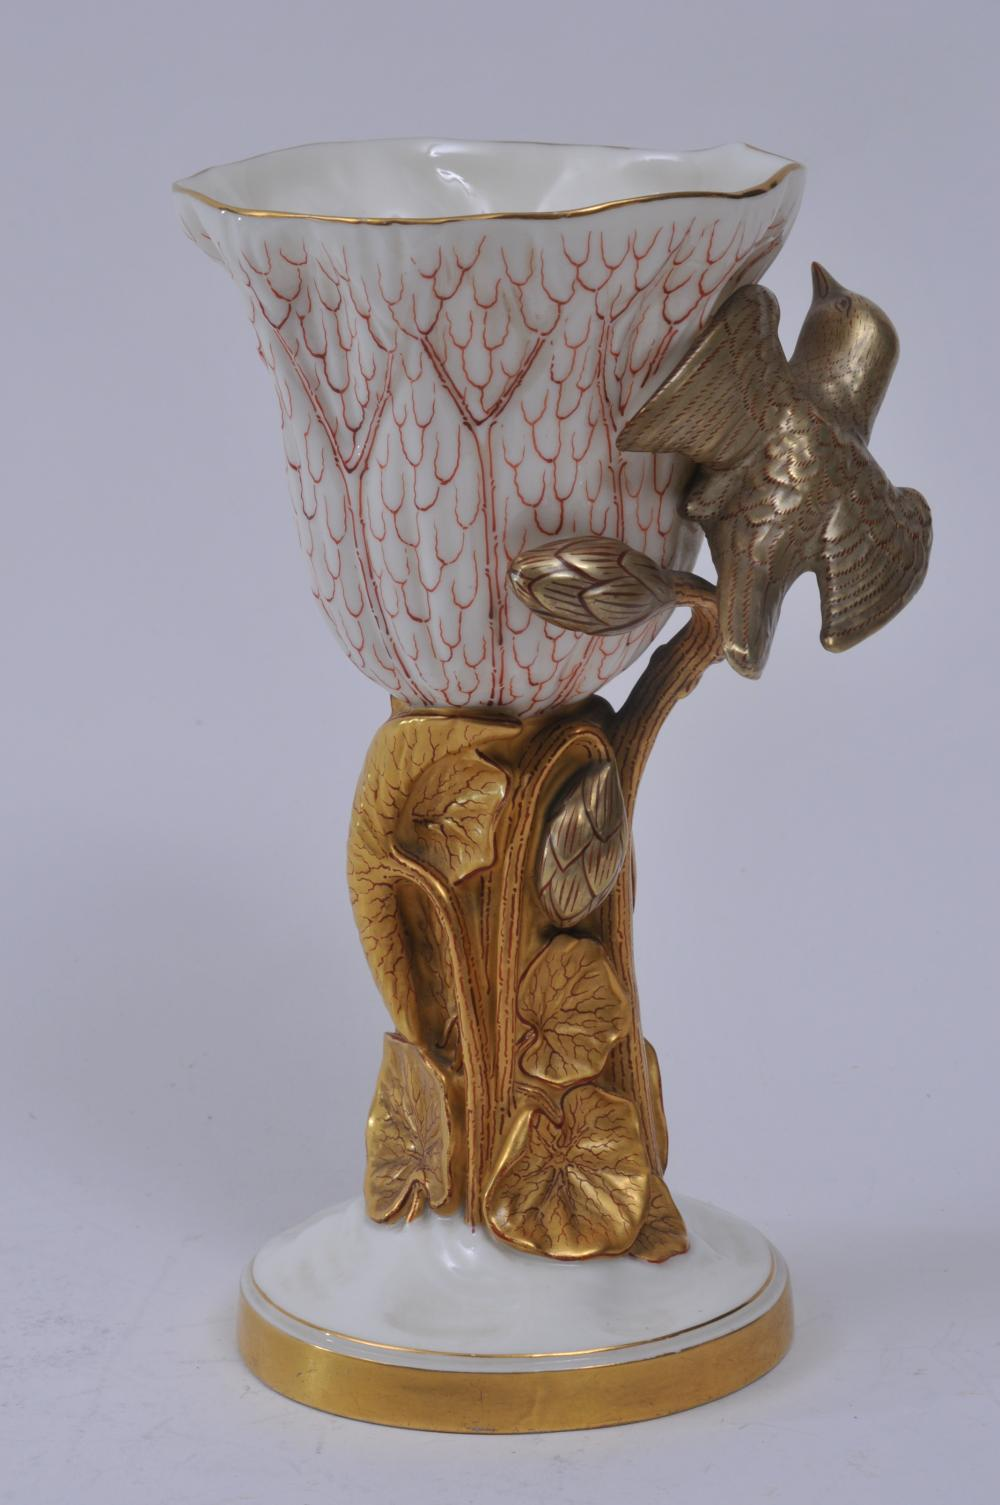 """Lot 180: Royal Worcester porcelain gilt decorated chalice with large relief bird and lily pad decoration. Signed on base. 7-1/2"""" high. Good condition. Wear to gilt on base trim."""